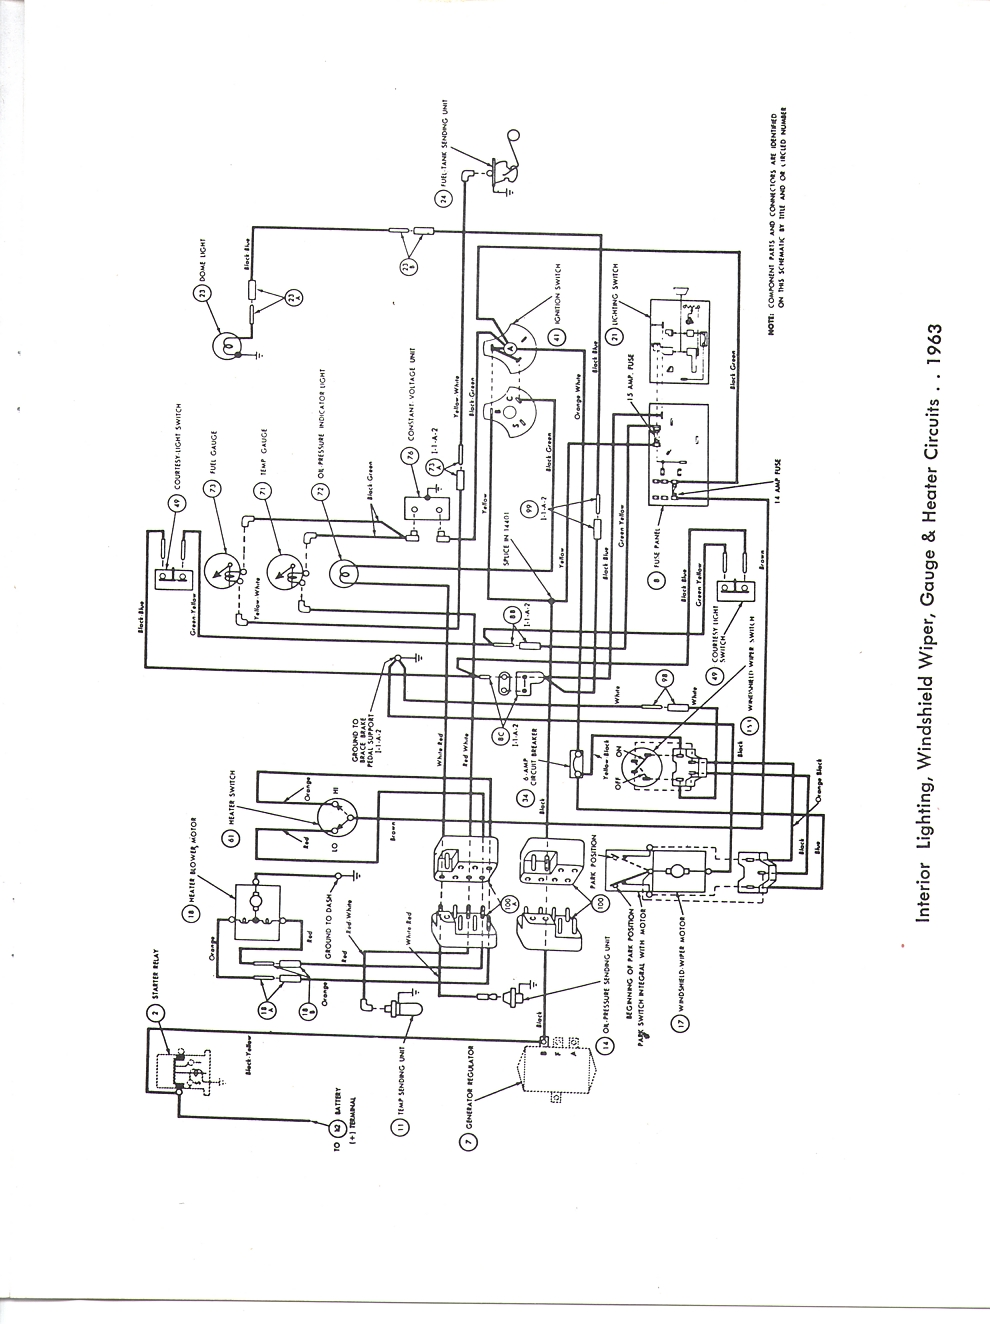 1995 dodge caravan fuse diagram